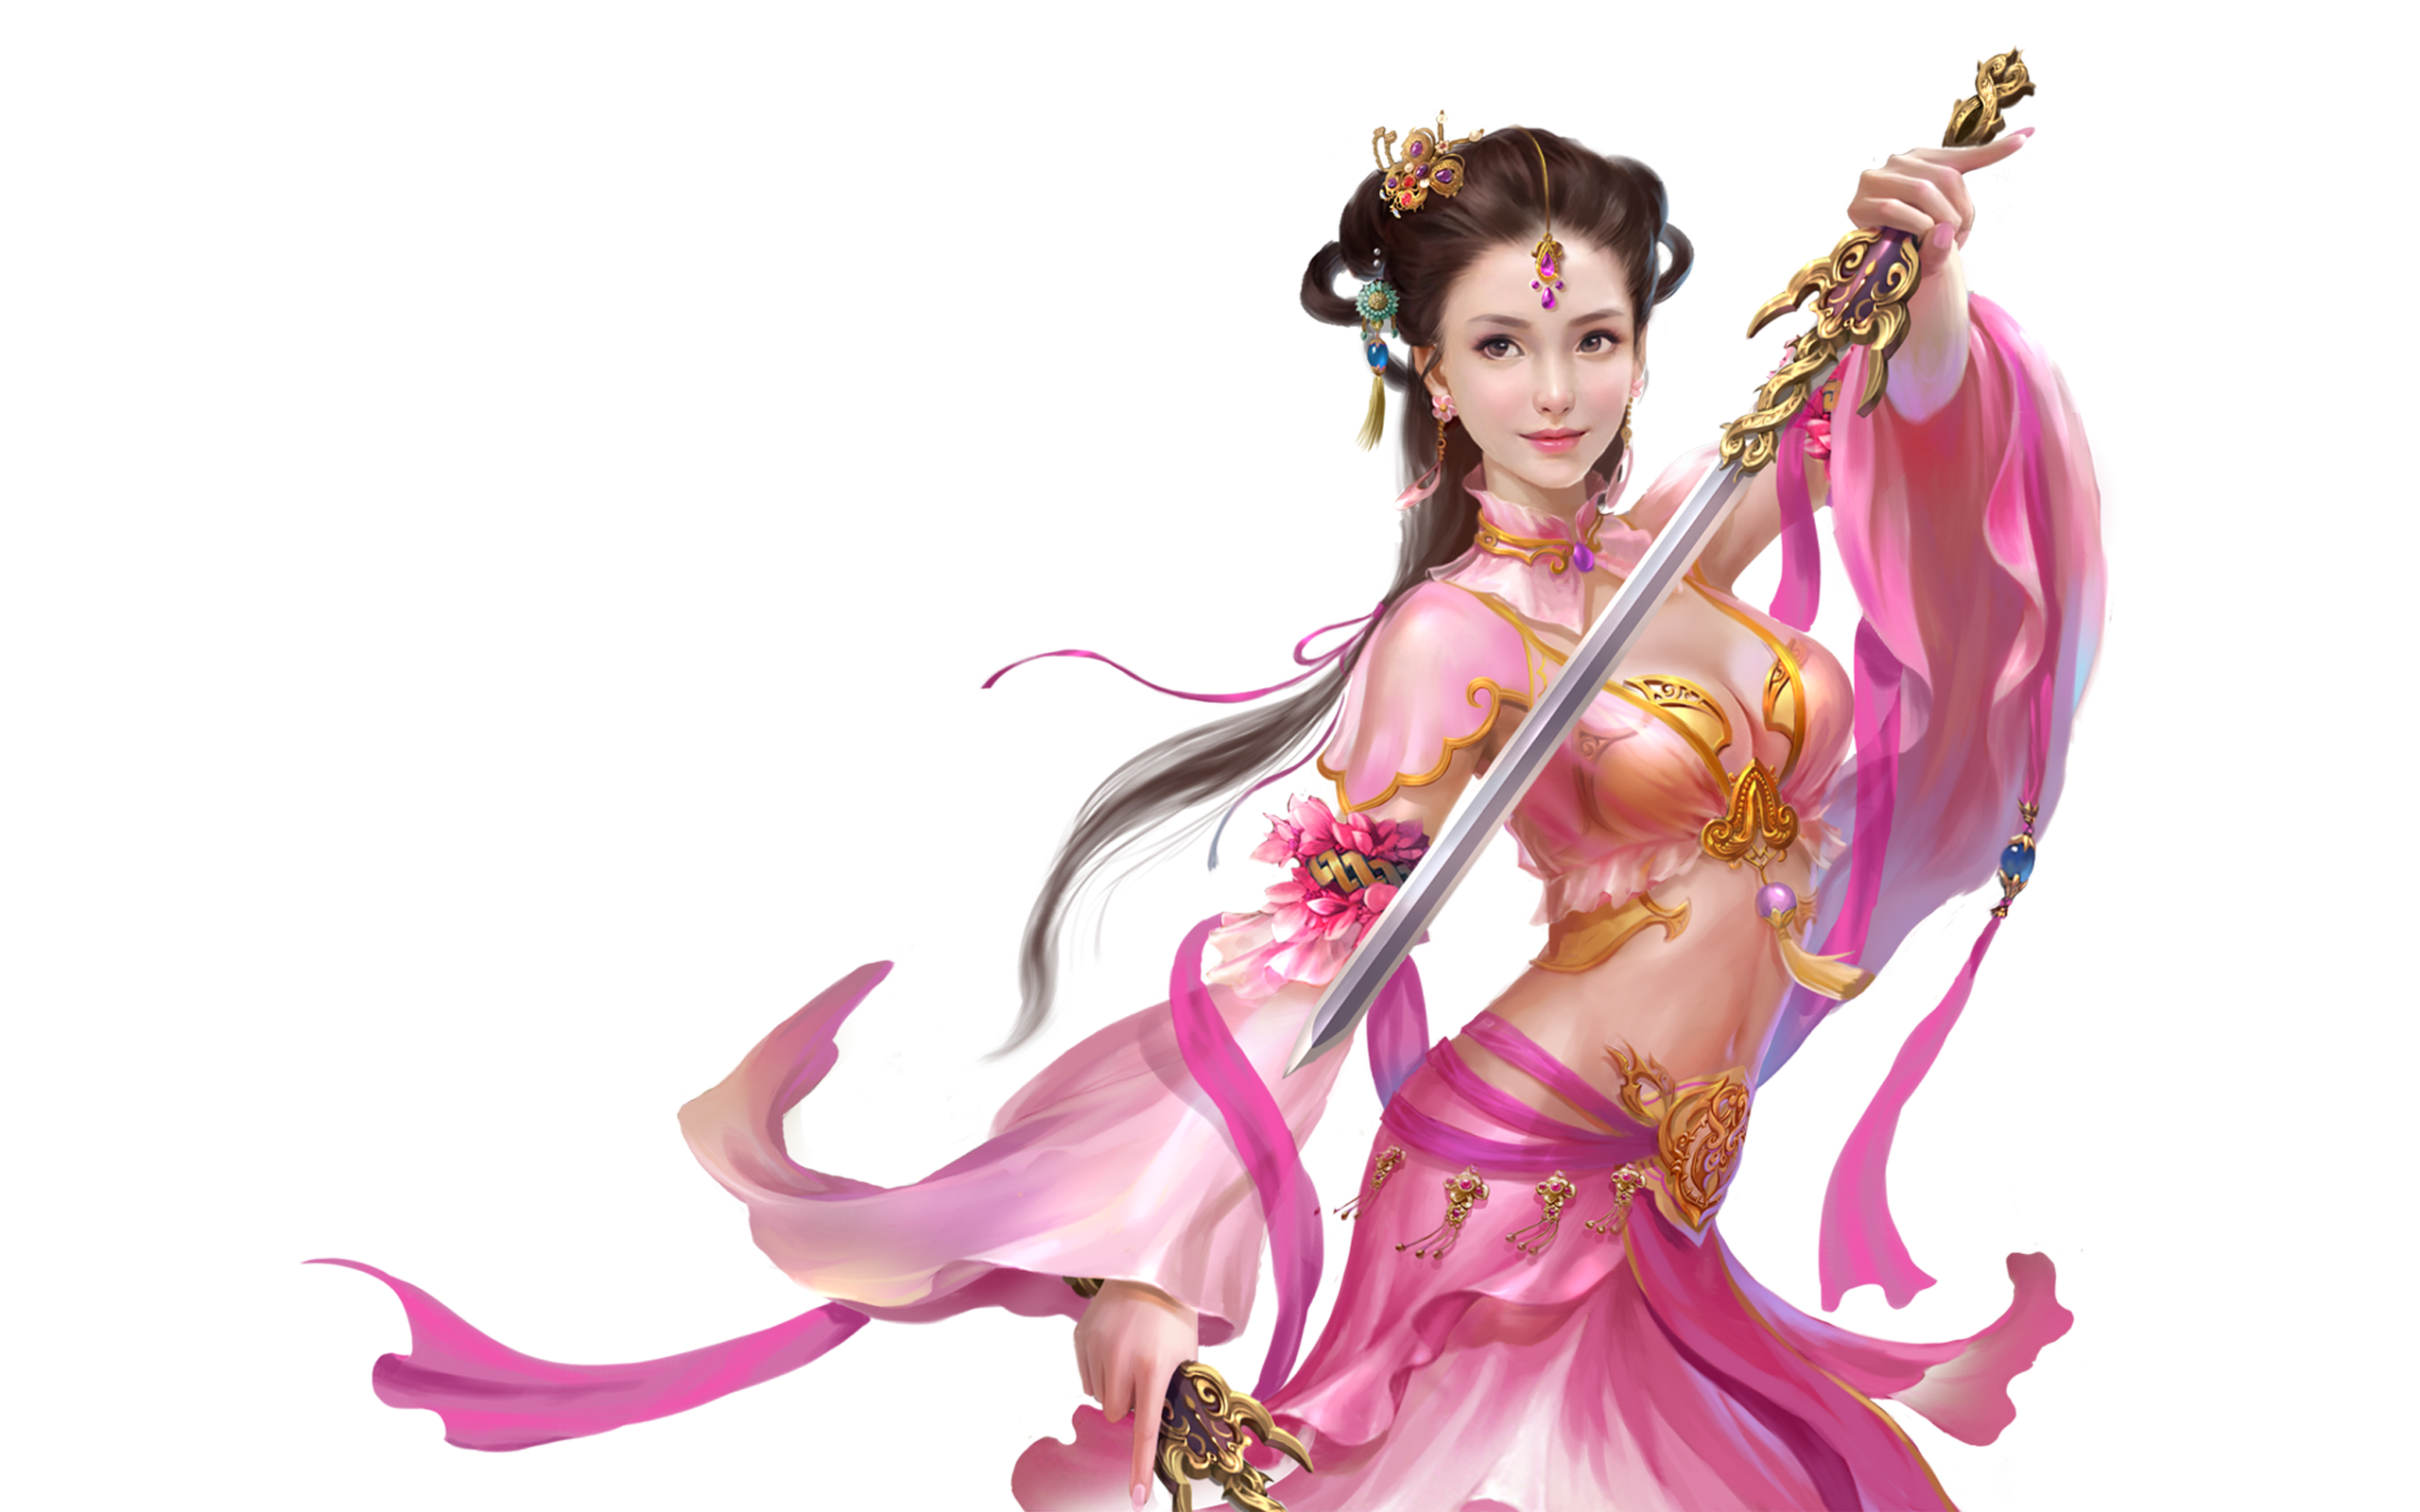 Samsung Galaxy S6 Wallpaper Anime Demon Girls Beautiful Girl Pink Silk Clothes Jewelry Sword In Hand